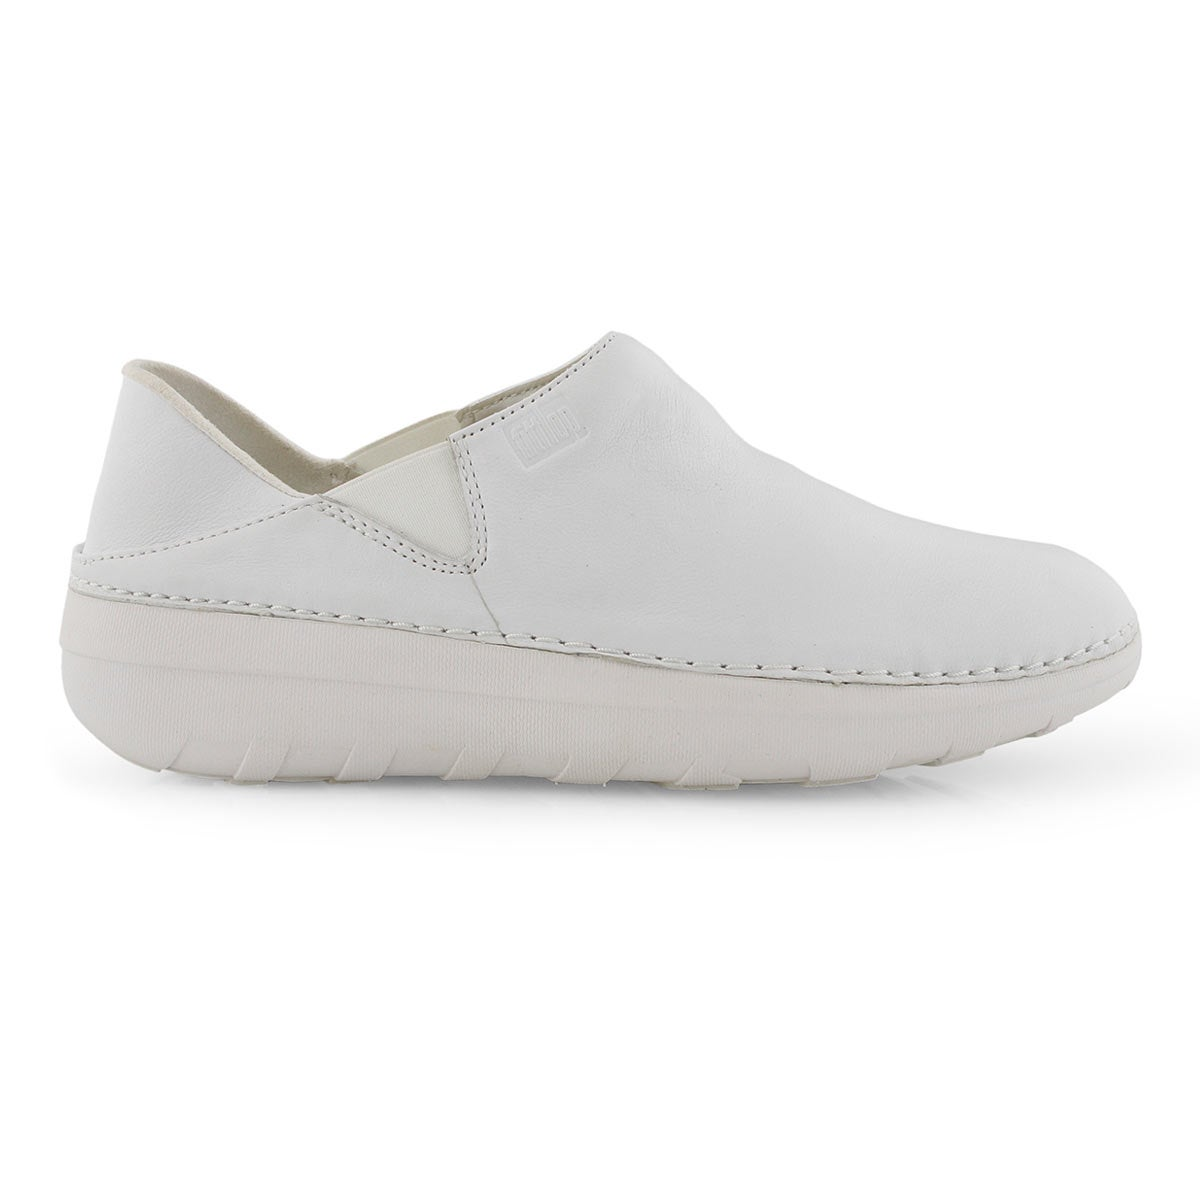 Lds Superloafer urban wht casual loafer